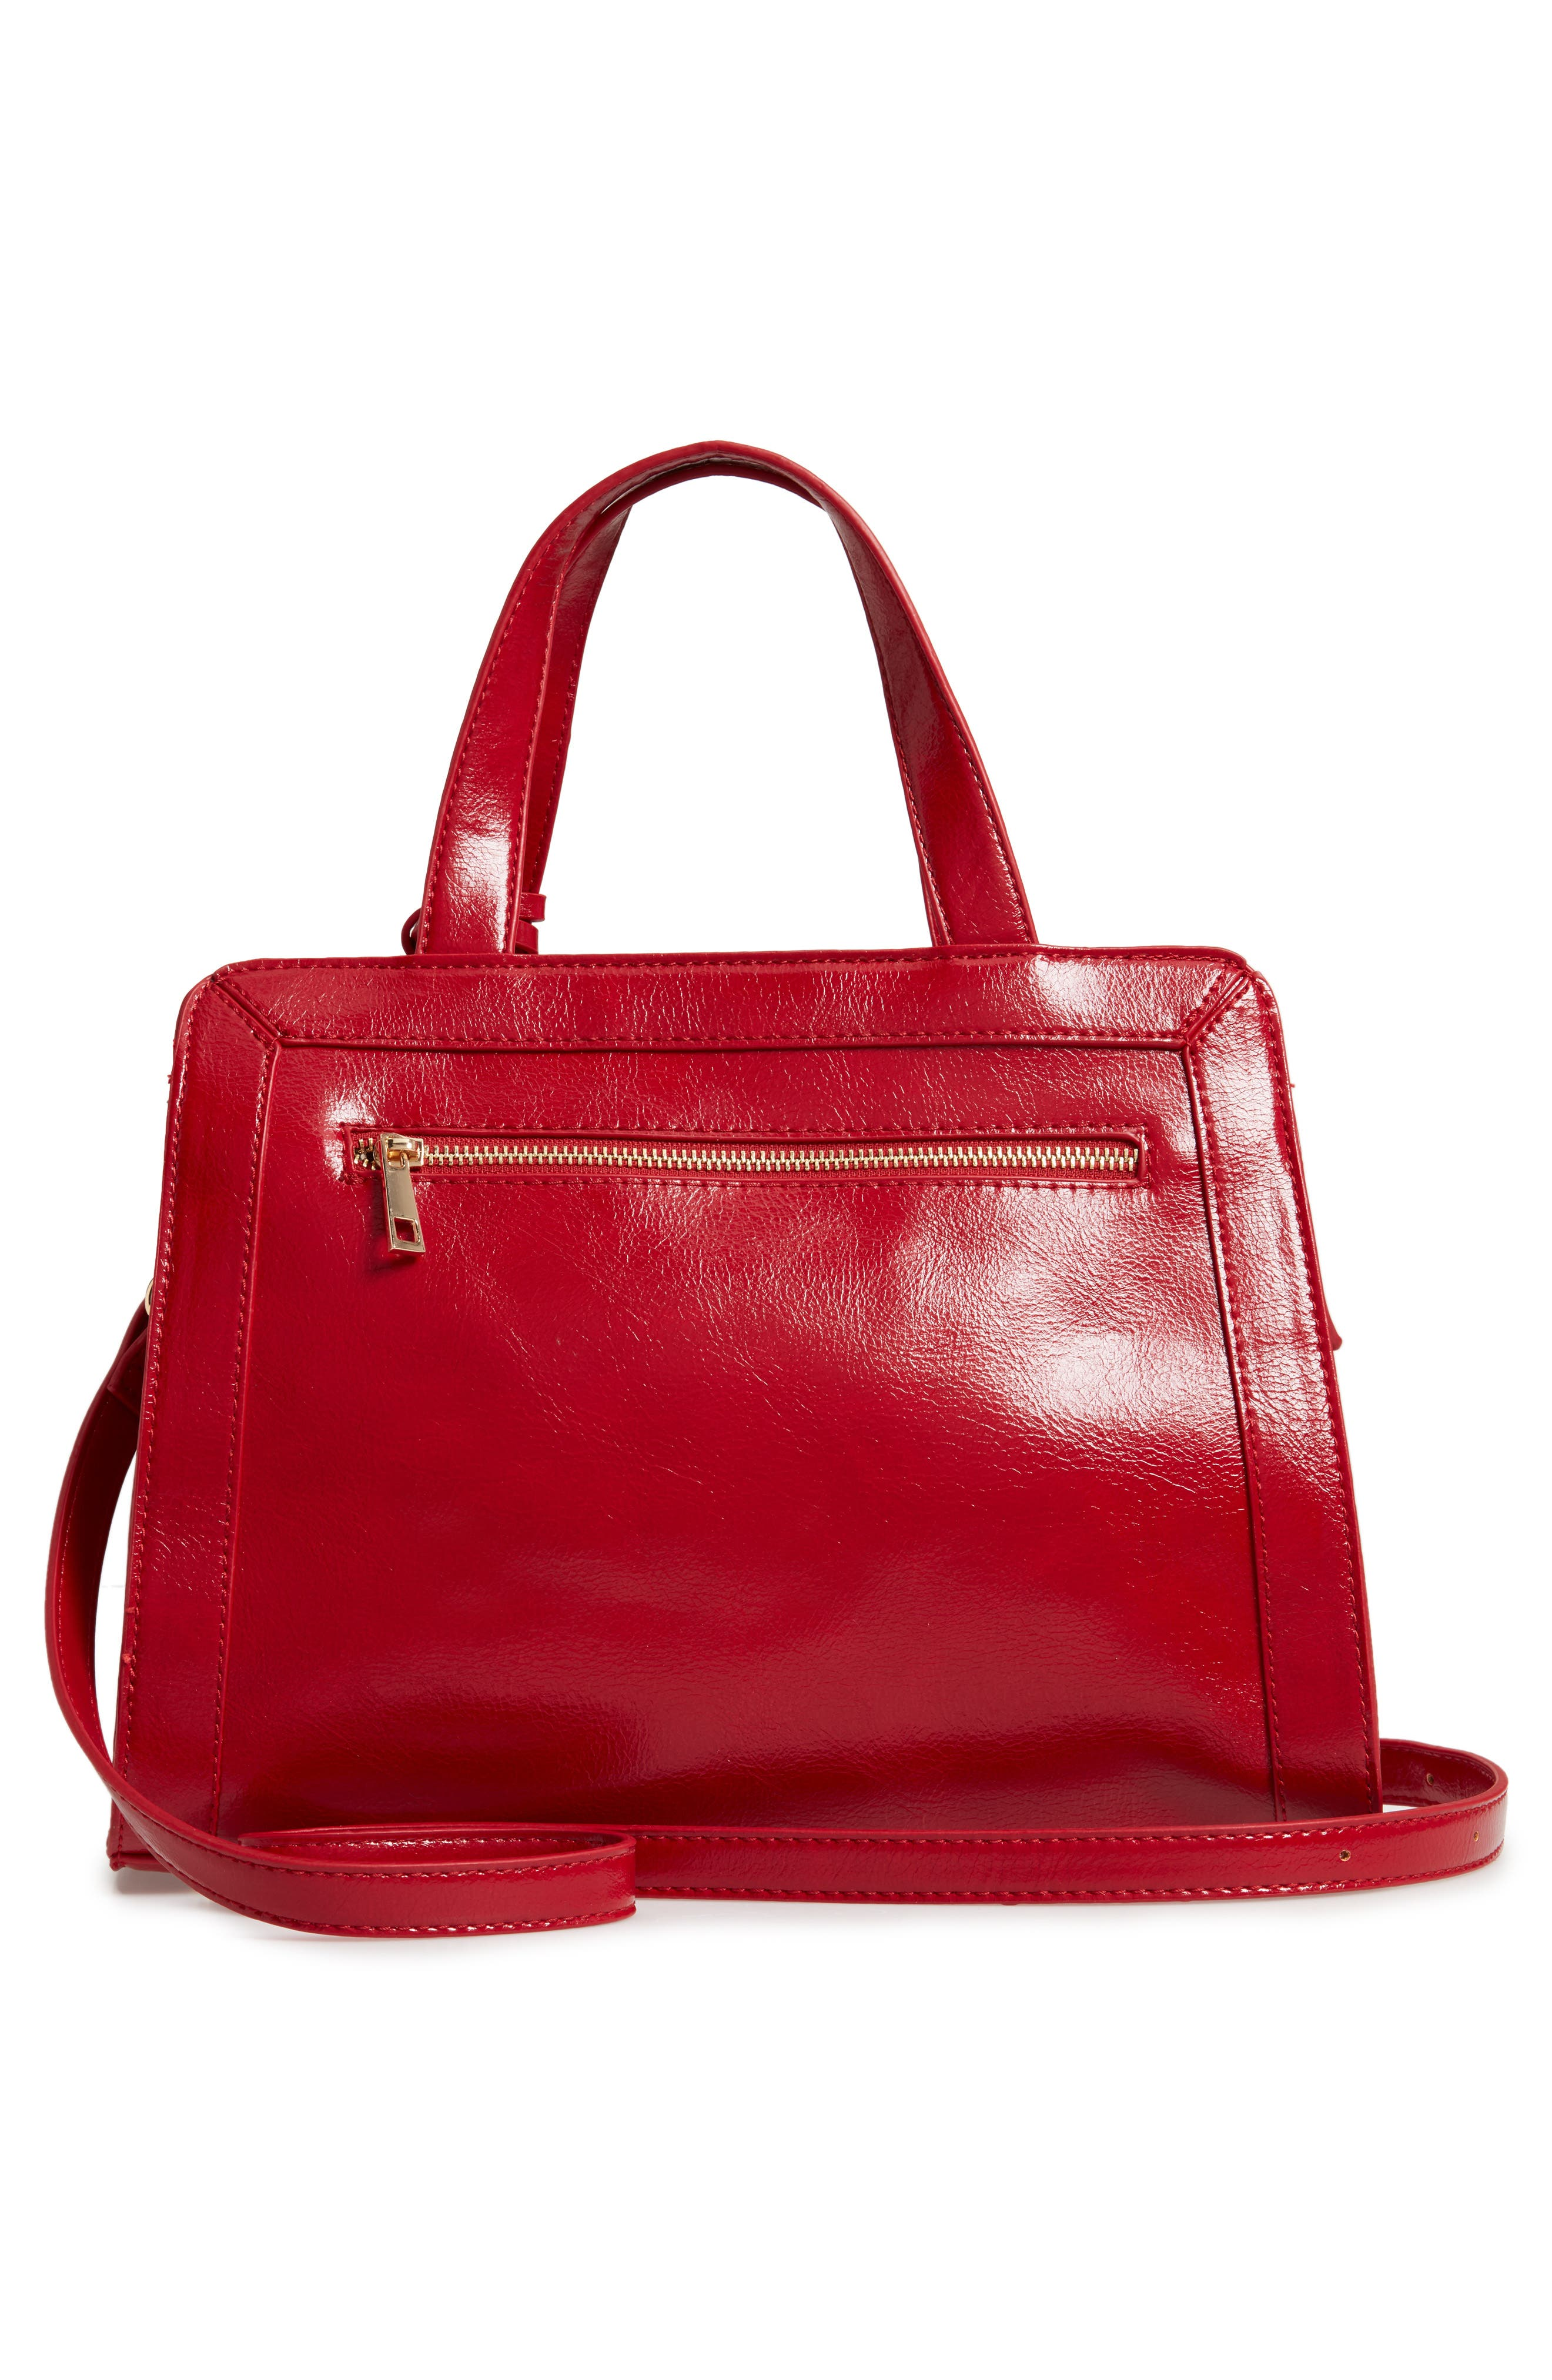 SOLE SOCIETY, Aisln Faux Leather Satchel, Alternate thumbnail 3, color, RED